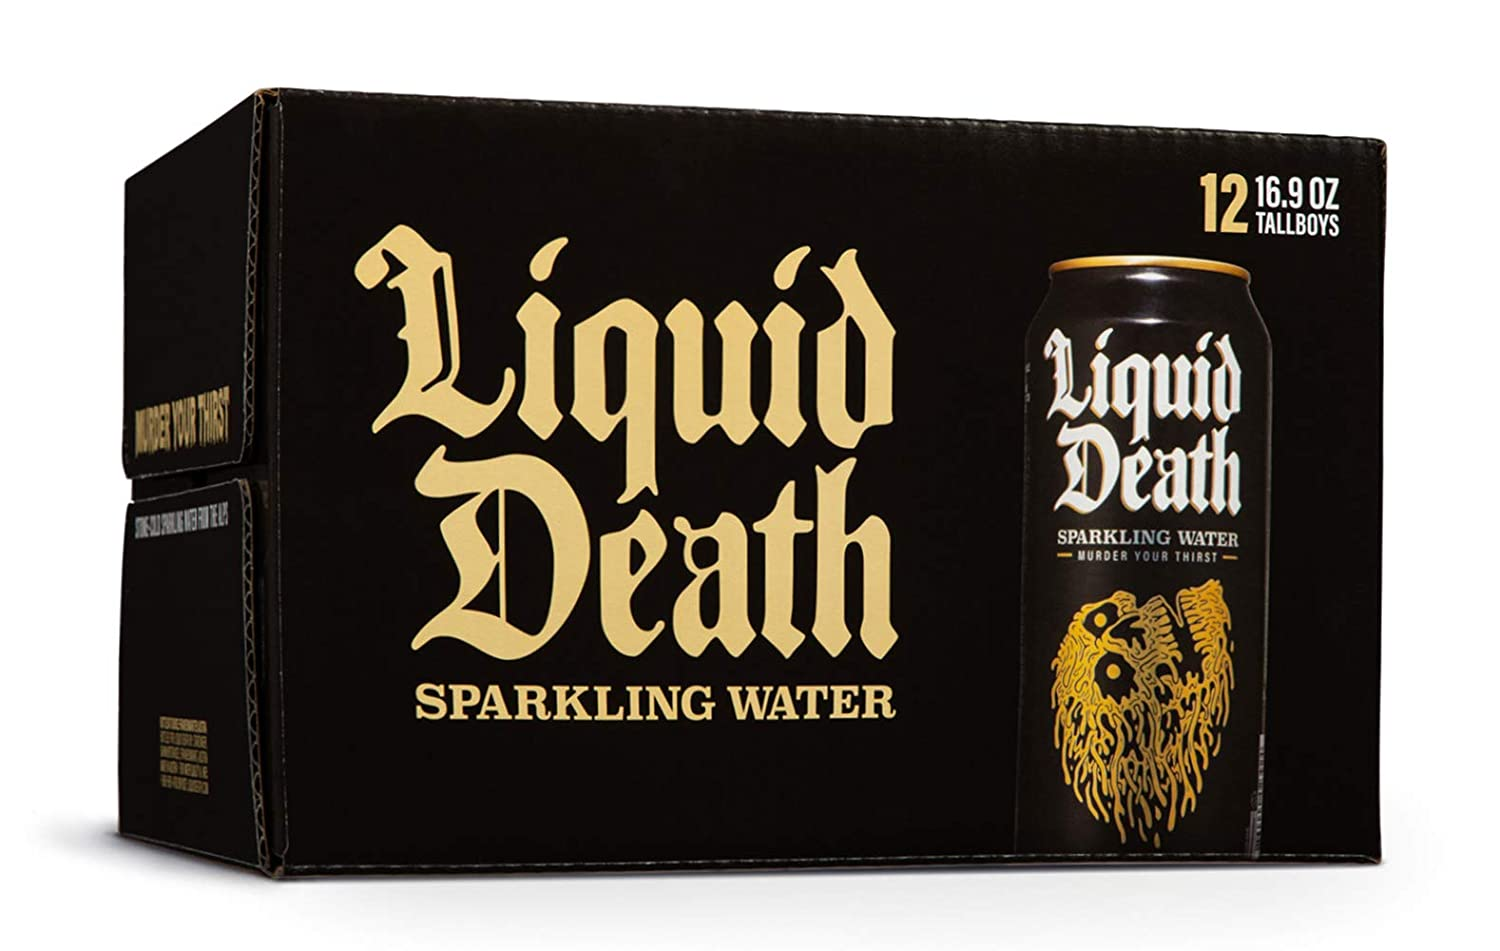 Liquid Death Online wholesale limited product Sparkling Water 16.9 Tallboys 12-Pack oz.